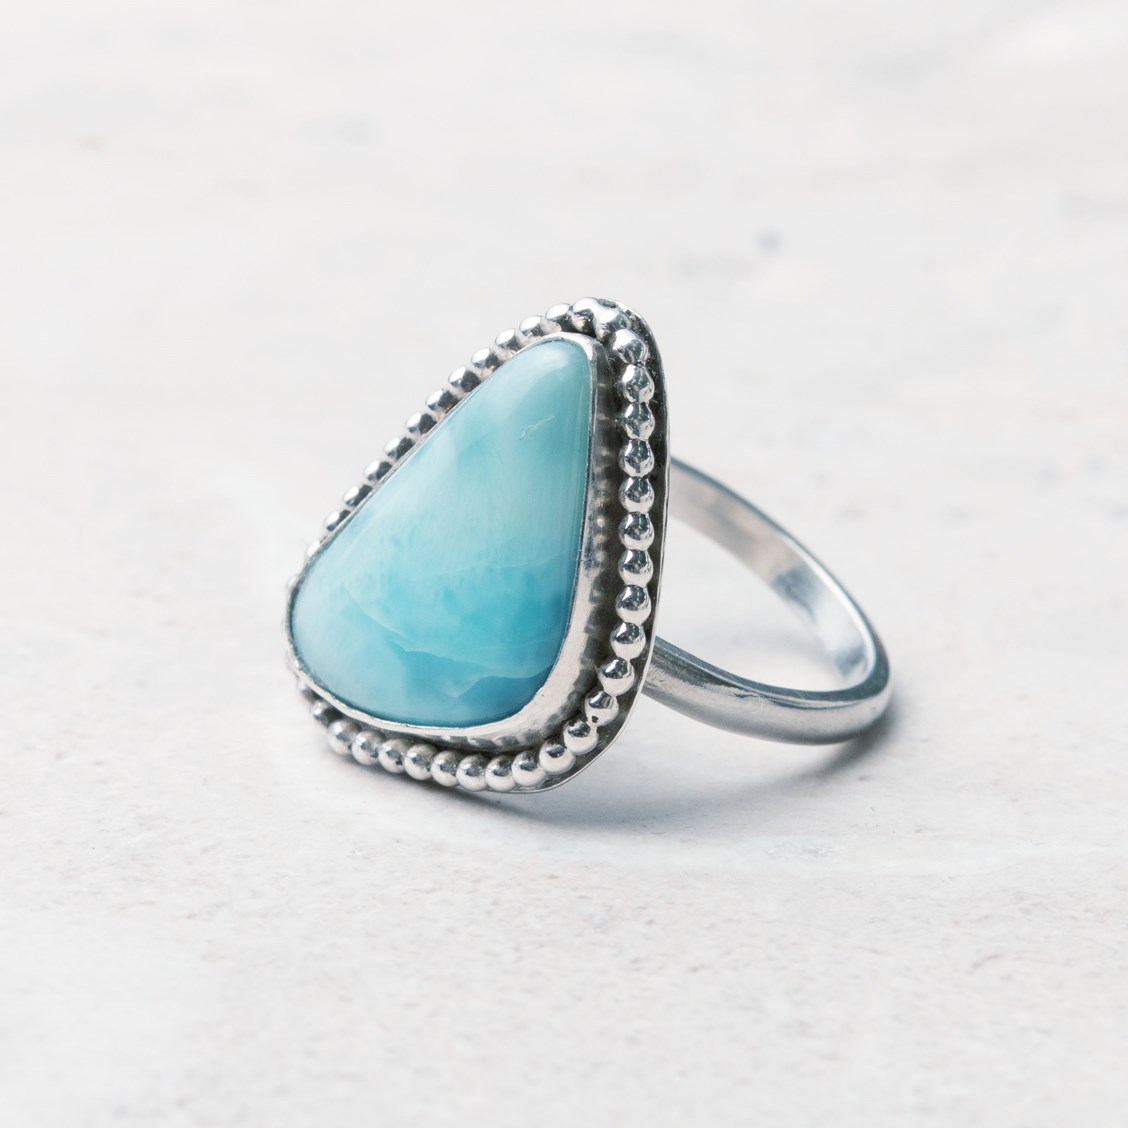 How To Make A Ring Setting For A Free Form Cabochon | Kernowcraft